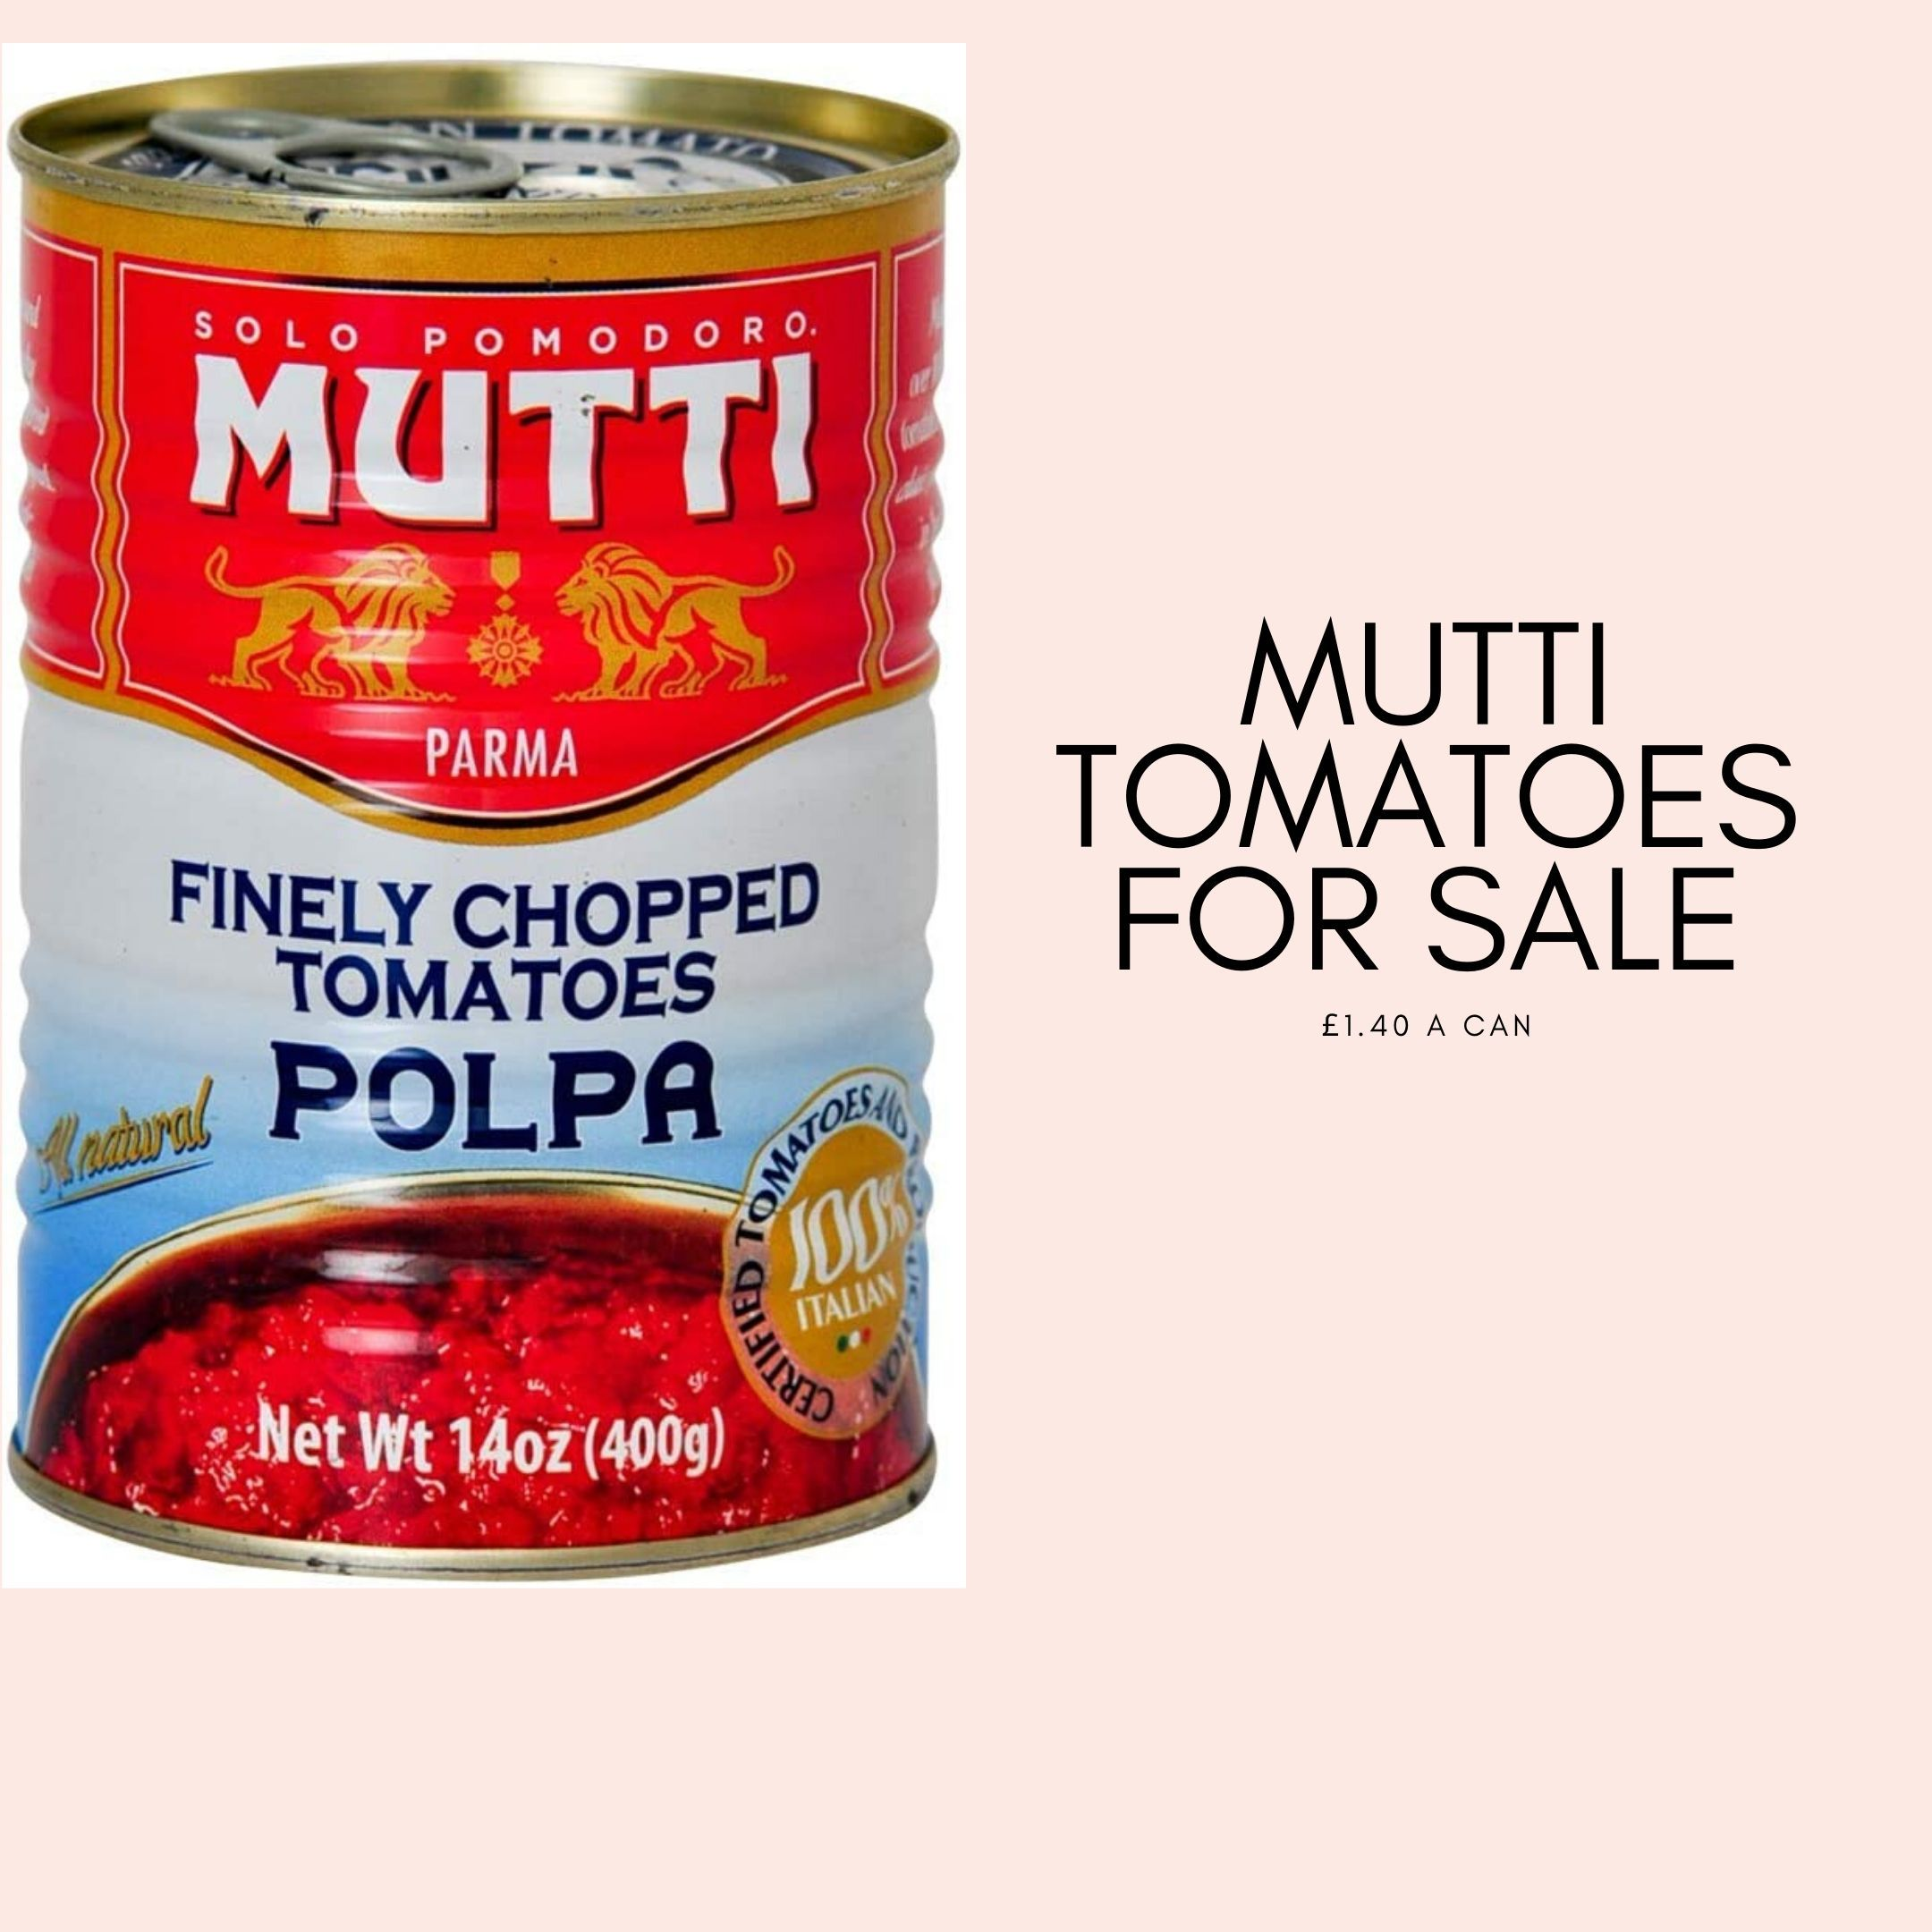 Mutti tomatoes for sale